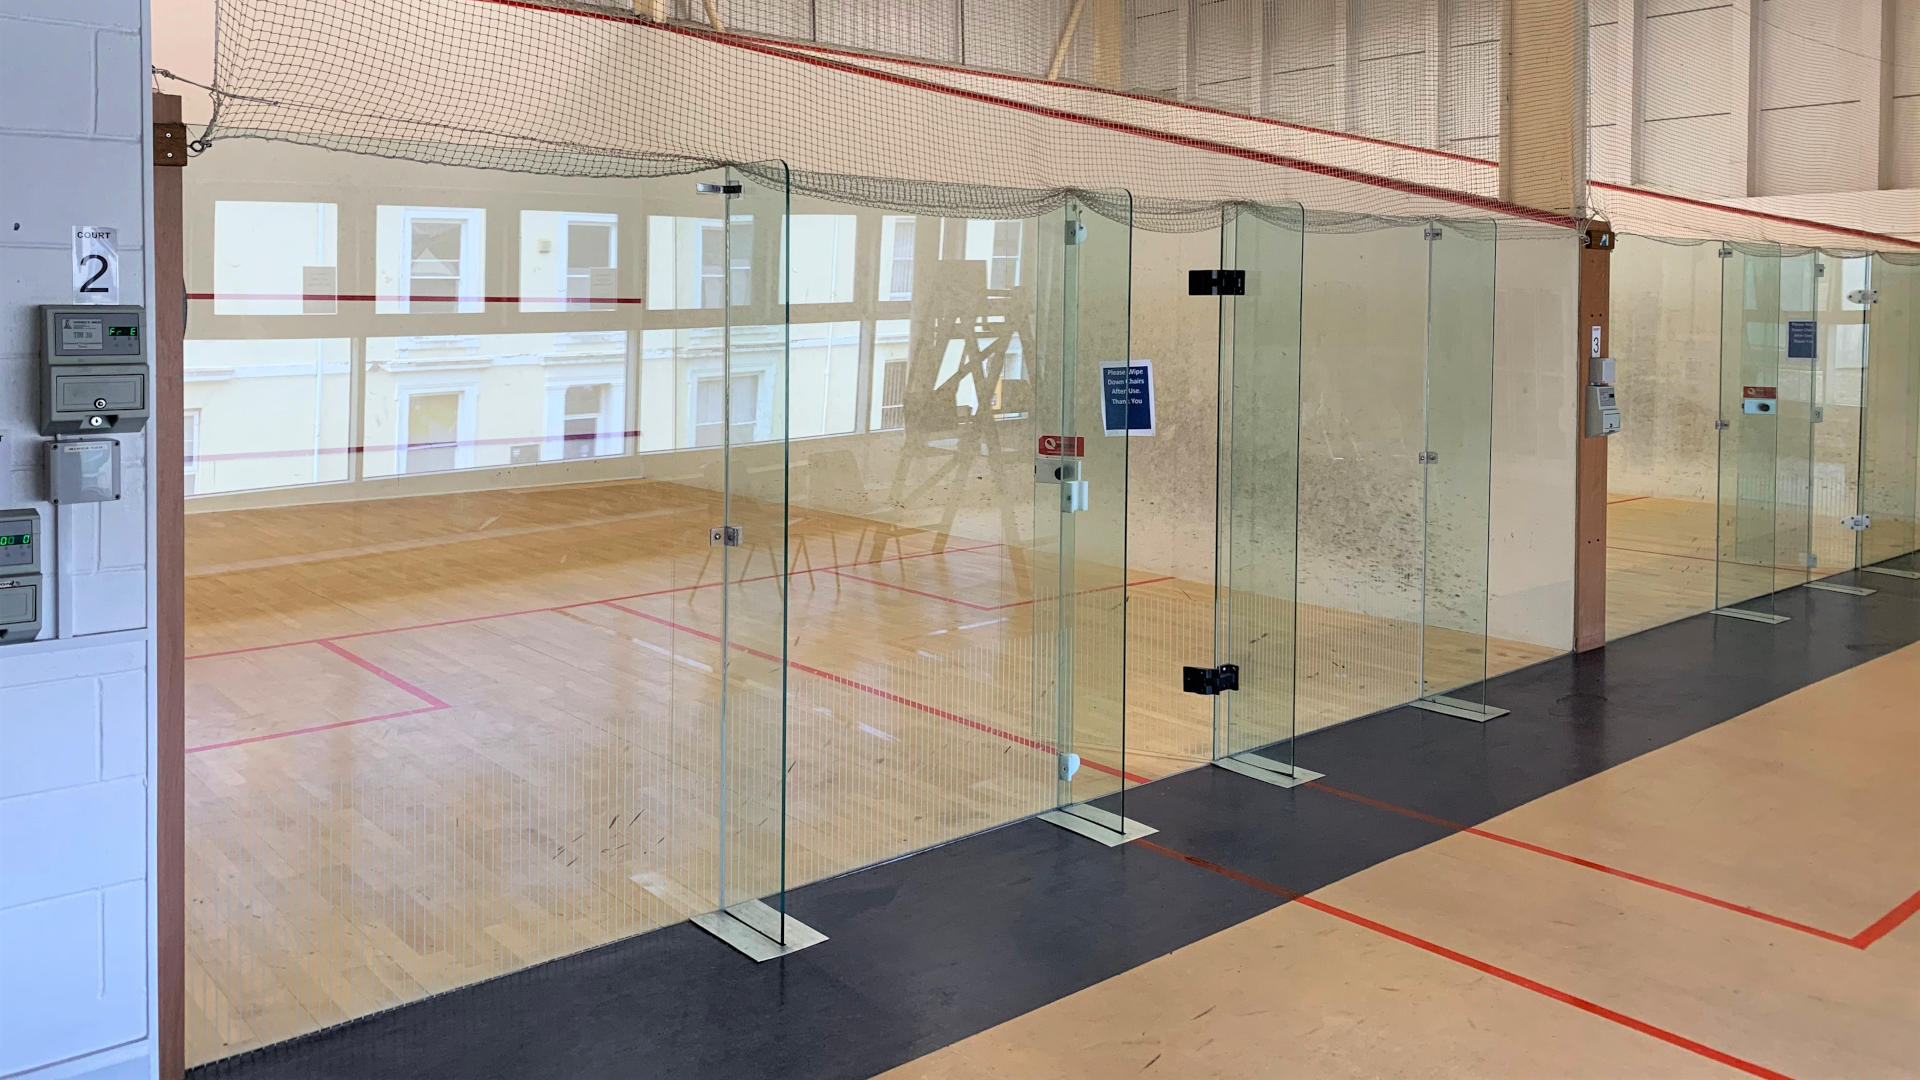 Fully equipped squash courts